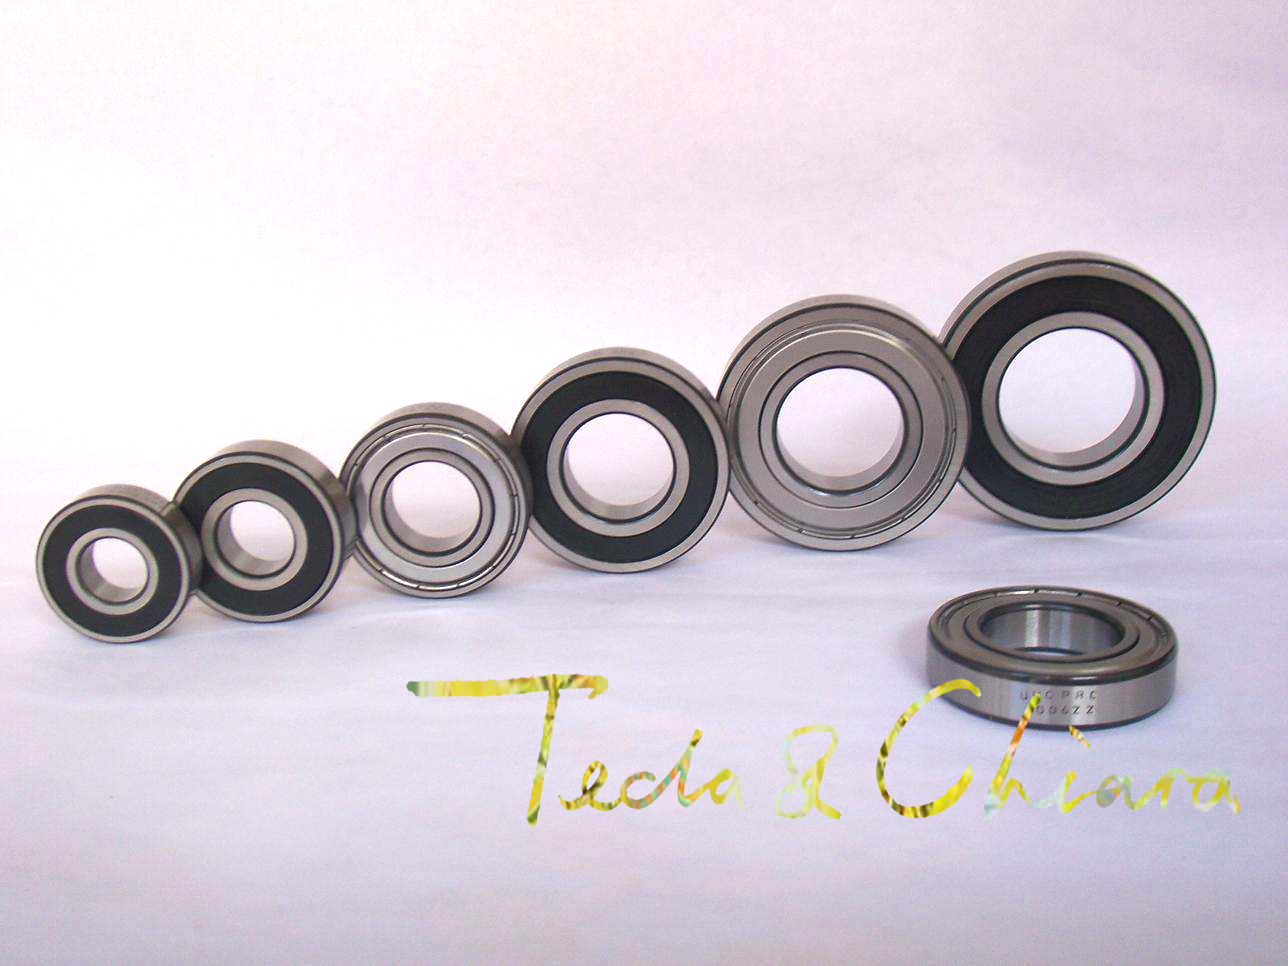 686 686ZZ 686RS 686-2Z 686Z 686-2RS ZZ RS RZ 2RZ Deep Groove Ball Bearings 6 x 13 x 5mm High Quality free shipping 25x47x12mm deep groove ball bearings 6005 zz 2z 6005zz bearing 6005zz 6005 2rs